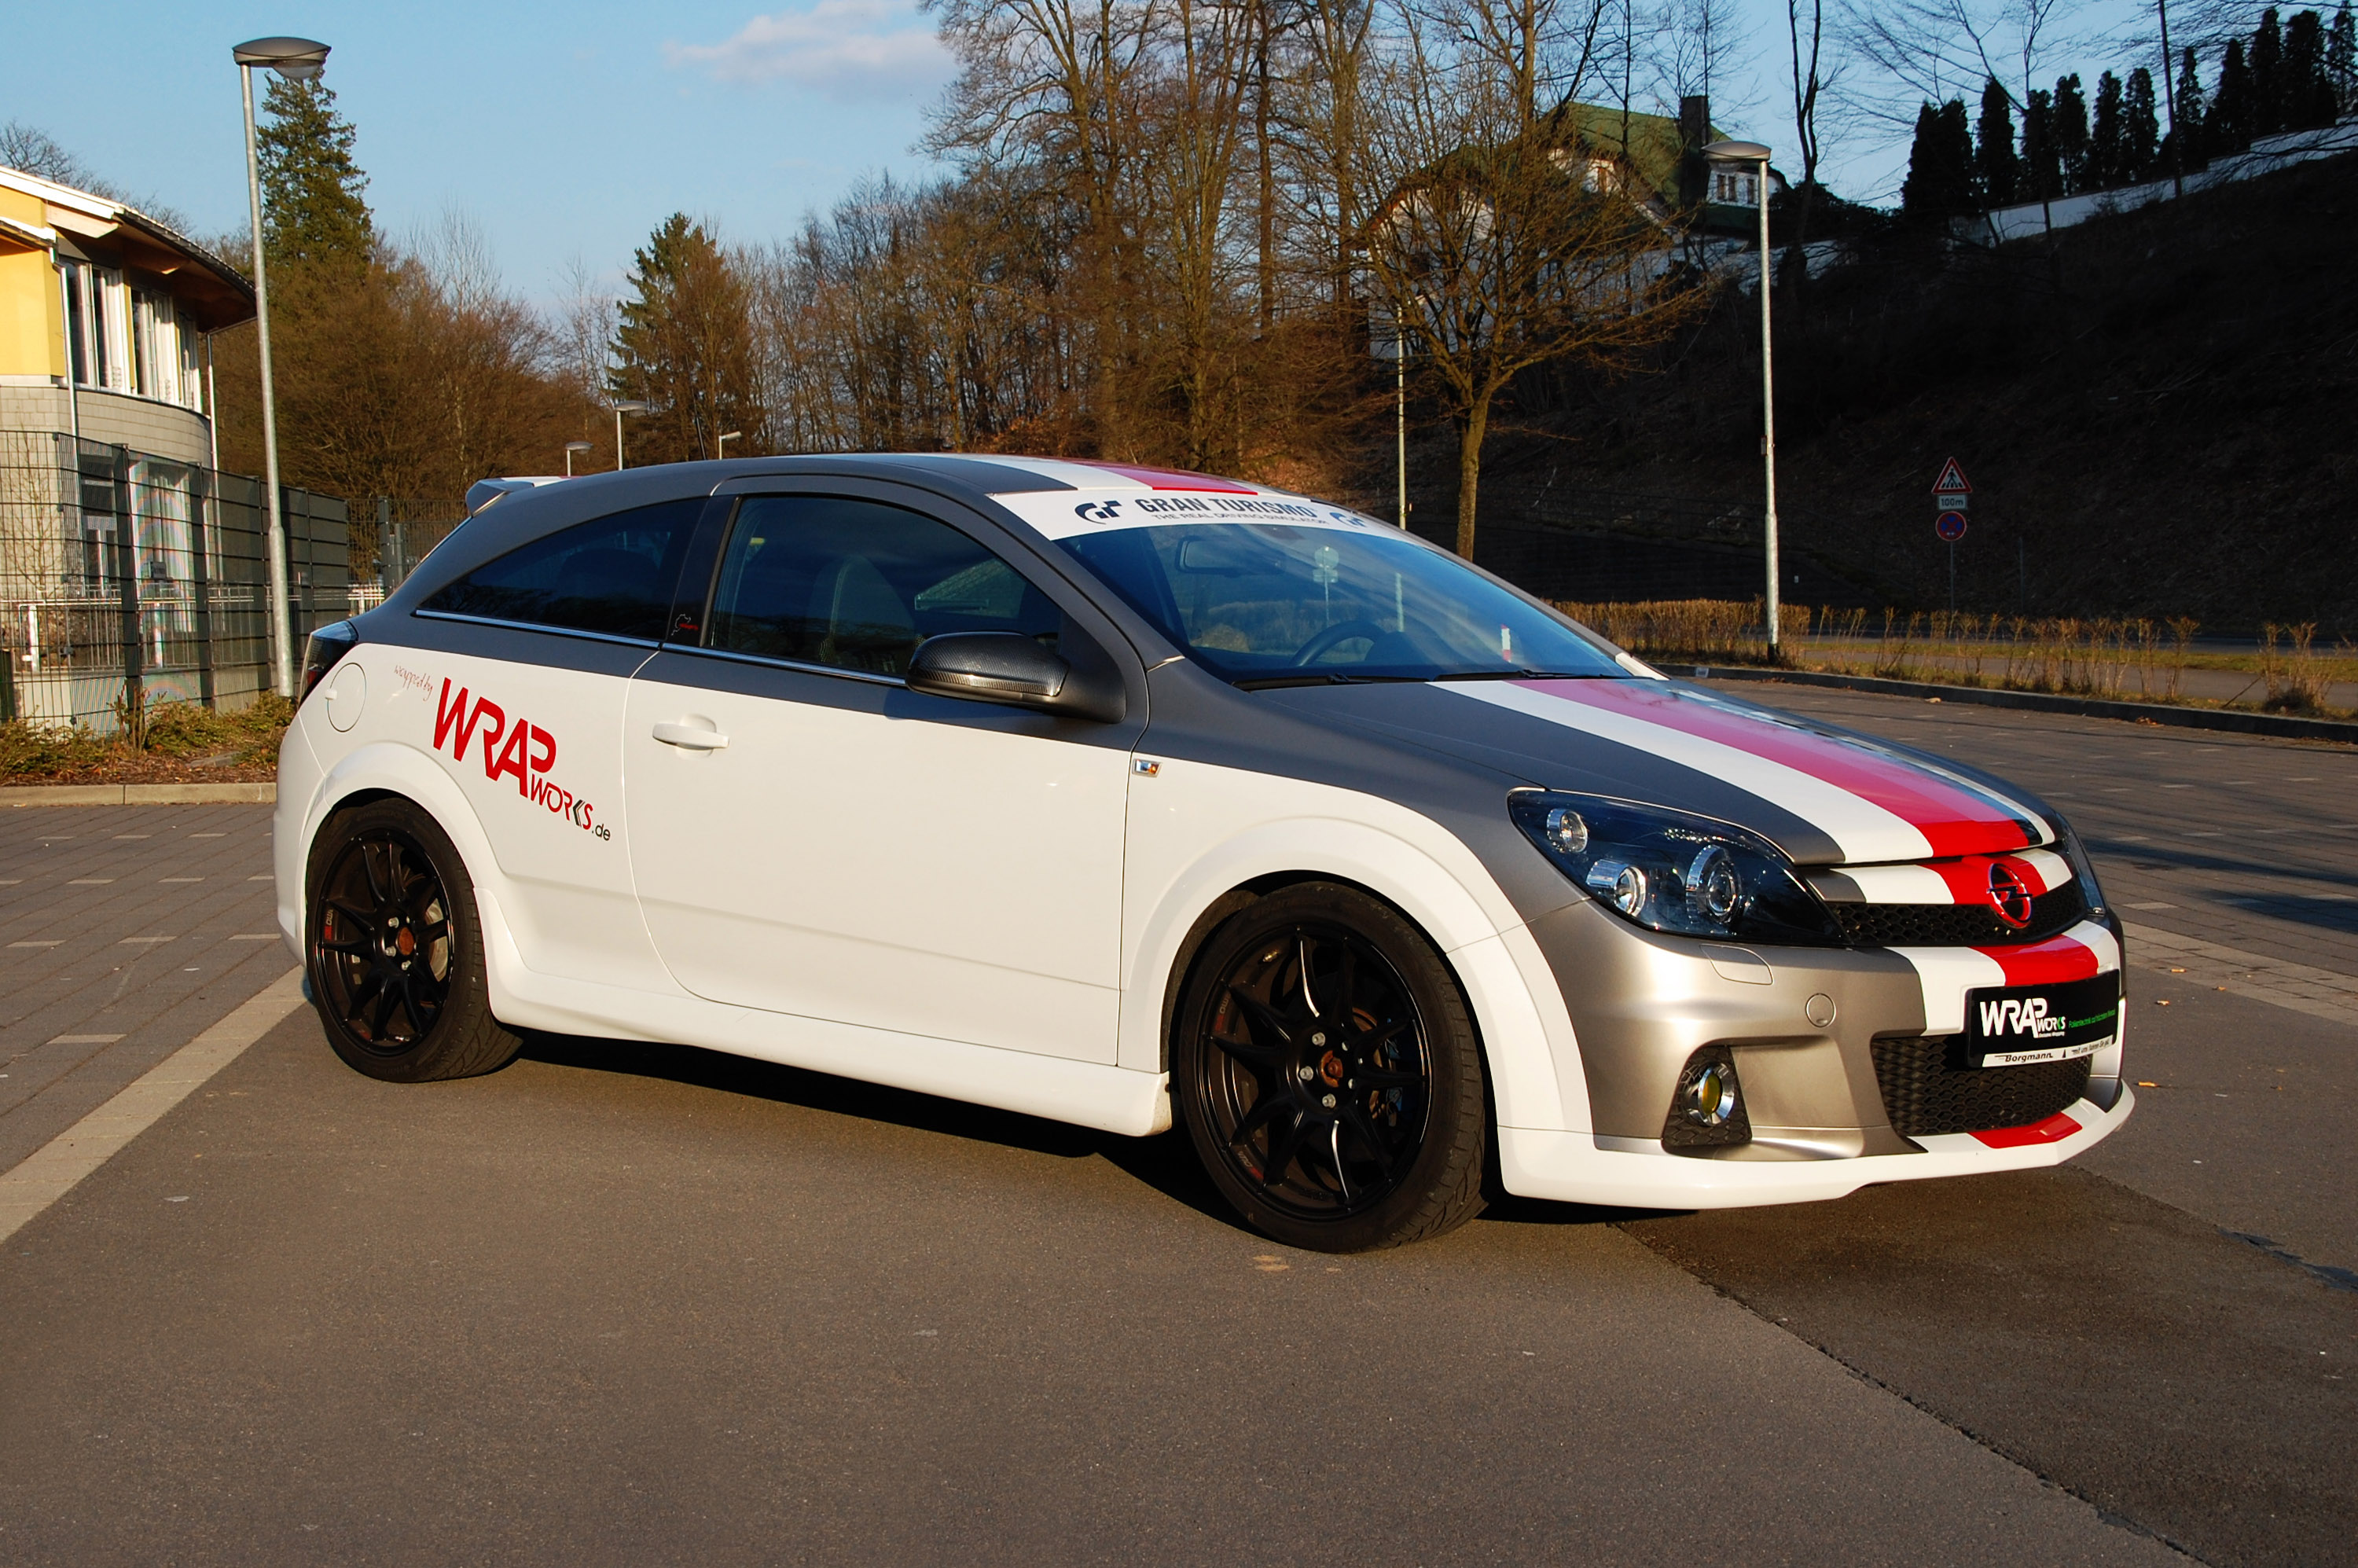 2013 opel astra h opc nurburgring tuning w wallpaper. Black Bedroom Furniture Sets. Home Design Ideas